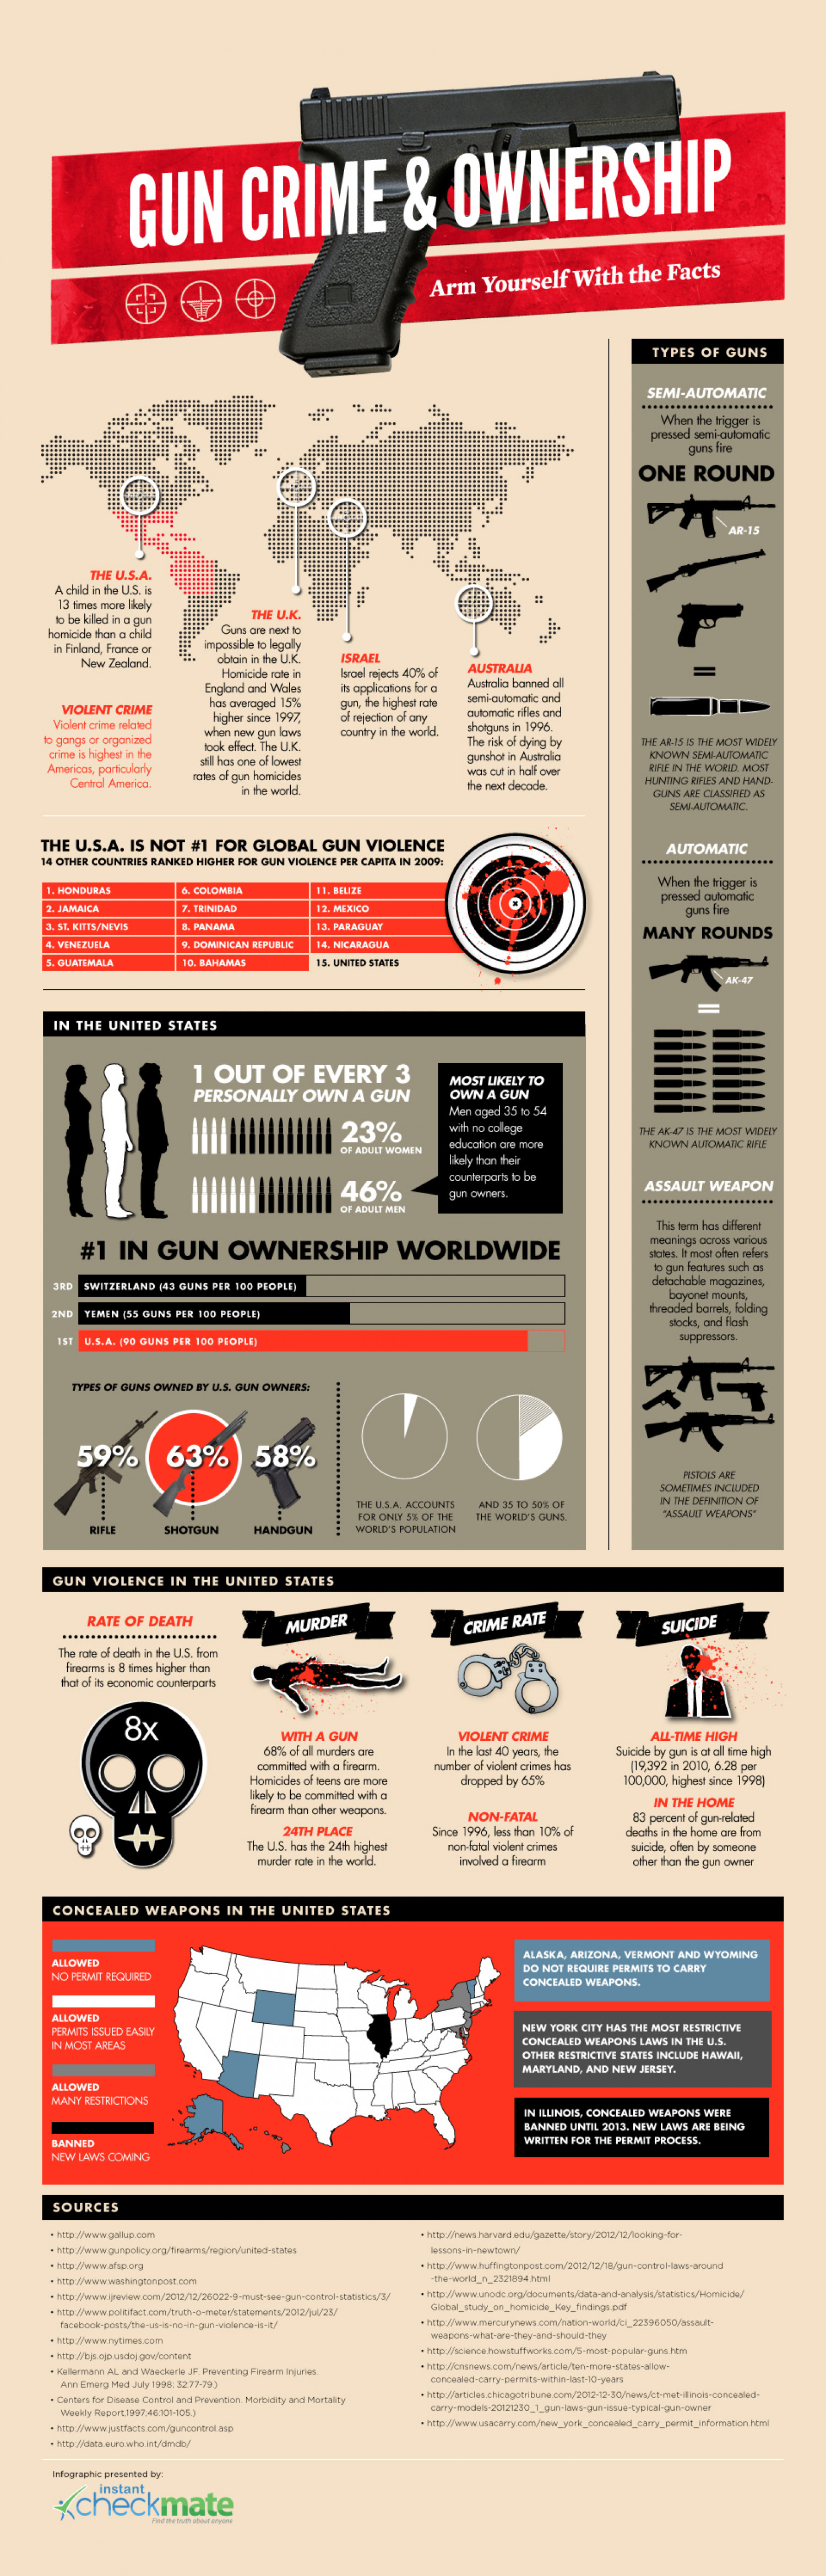 Gun Crime & Ownership Infographic